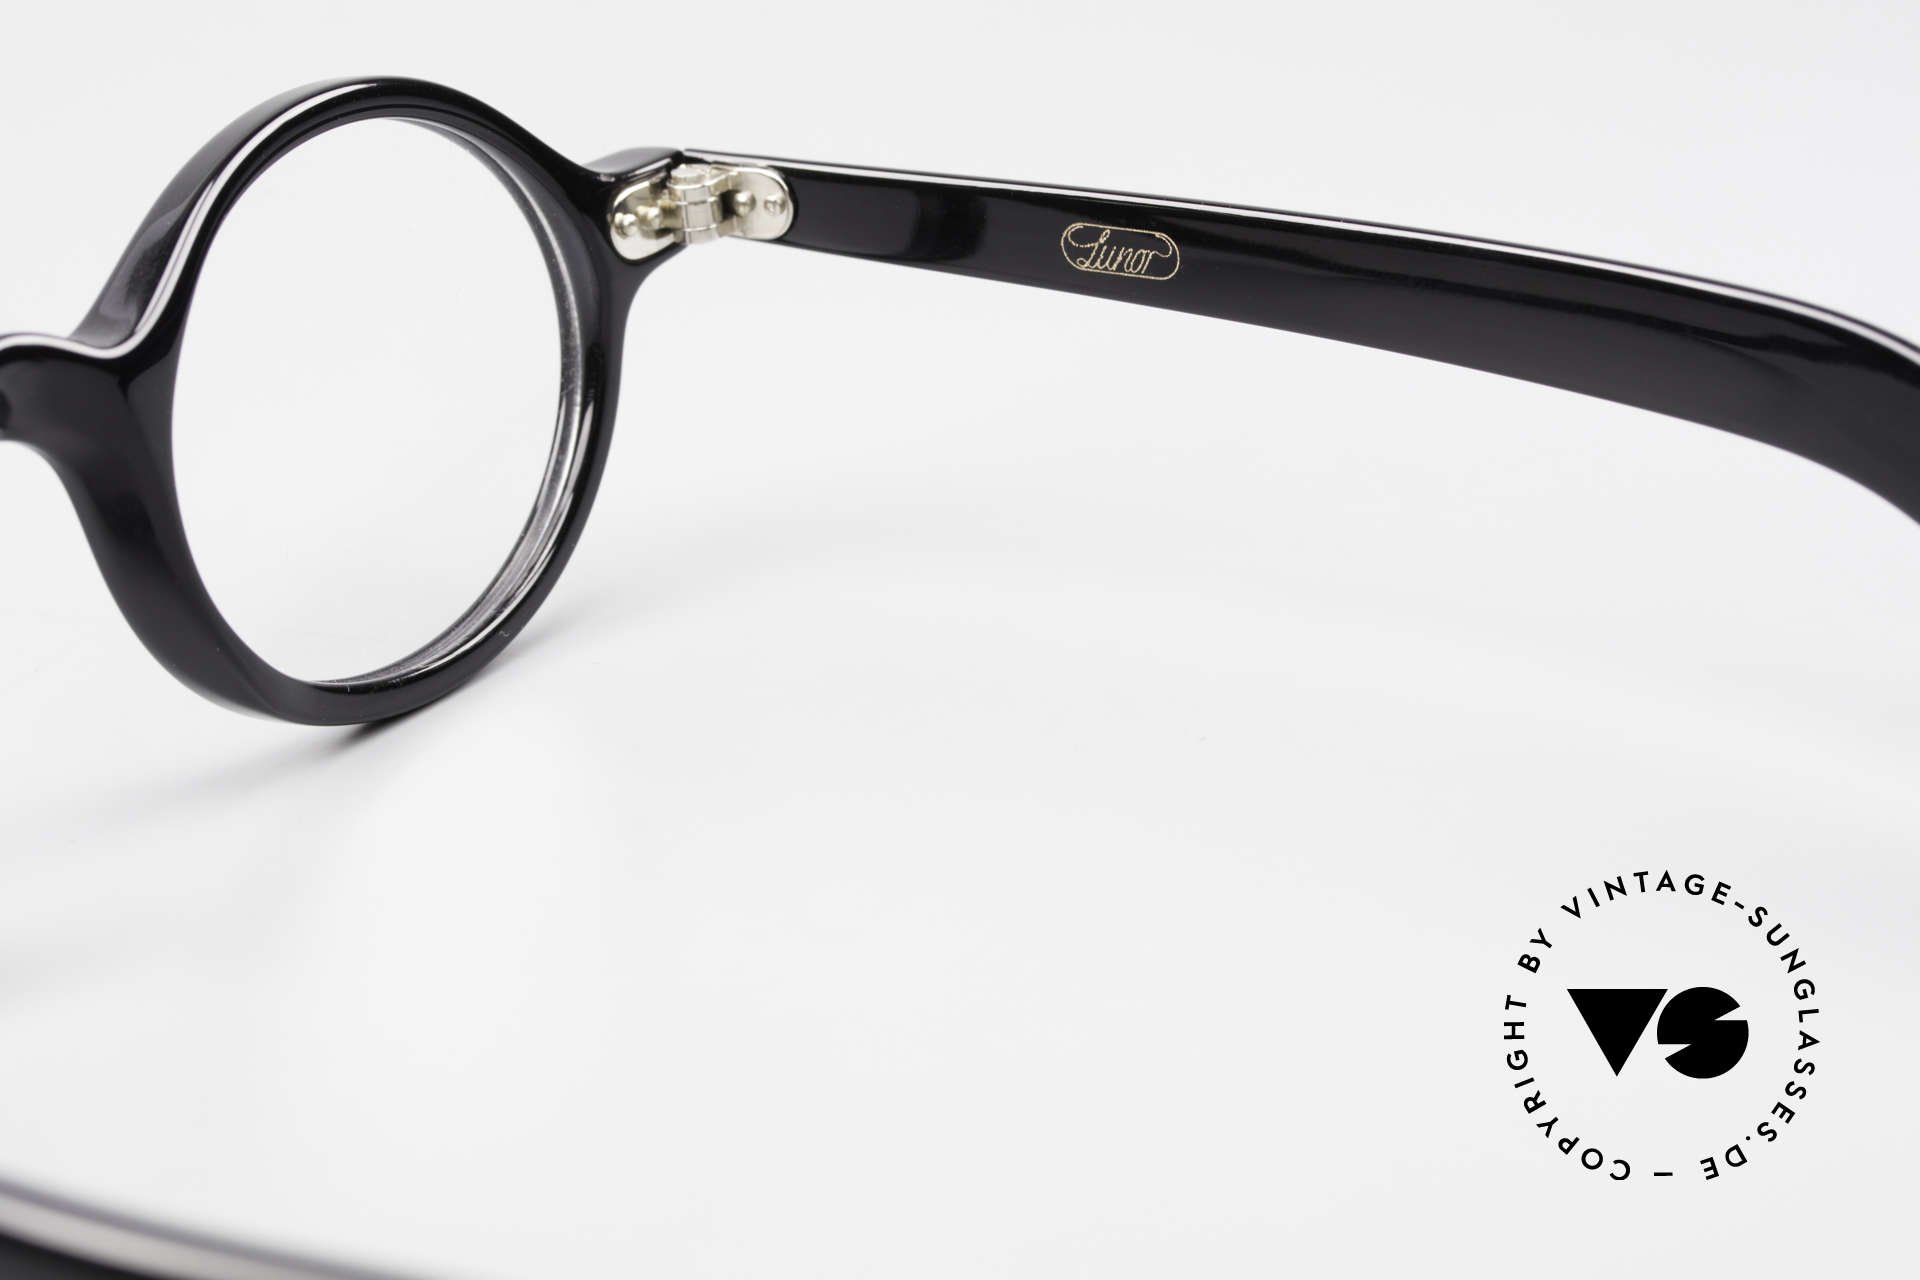 Lunor A52 Oval Eyeglasses Black Acetate, Size: medium, Made for Men and Women